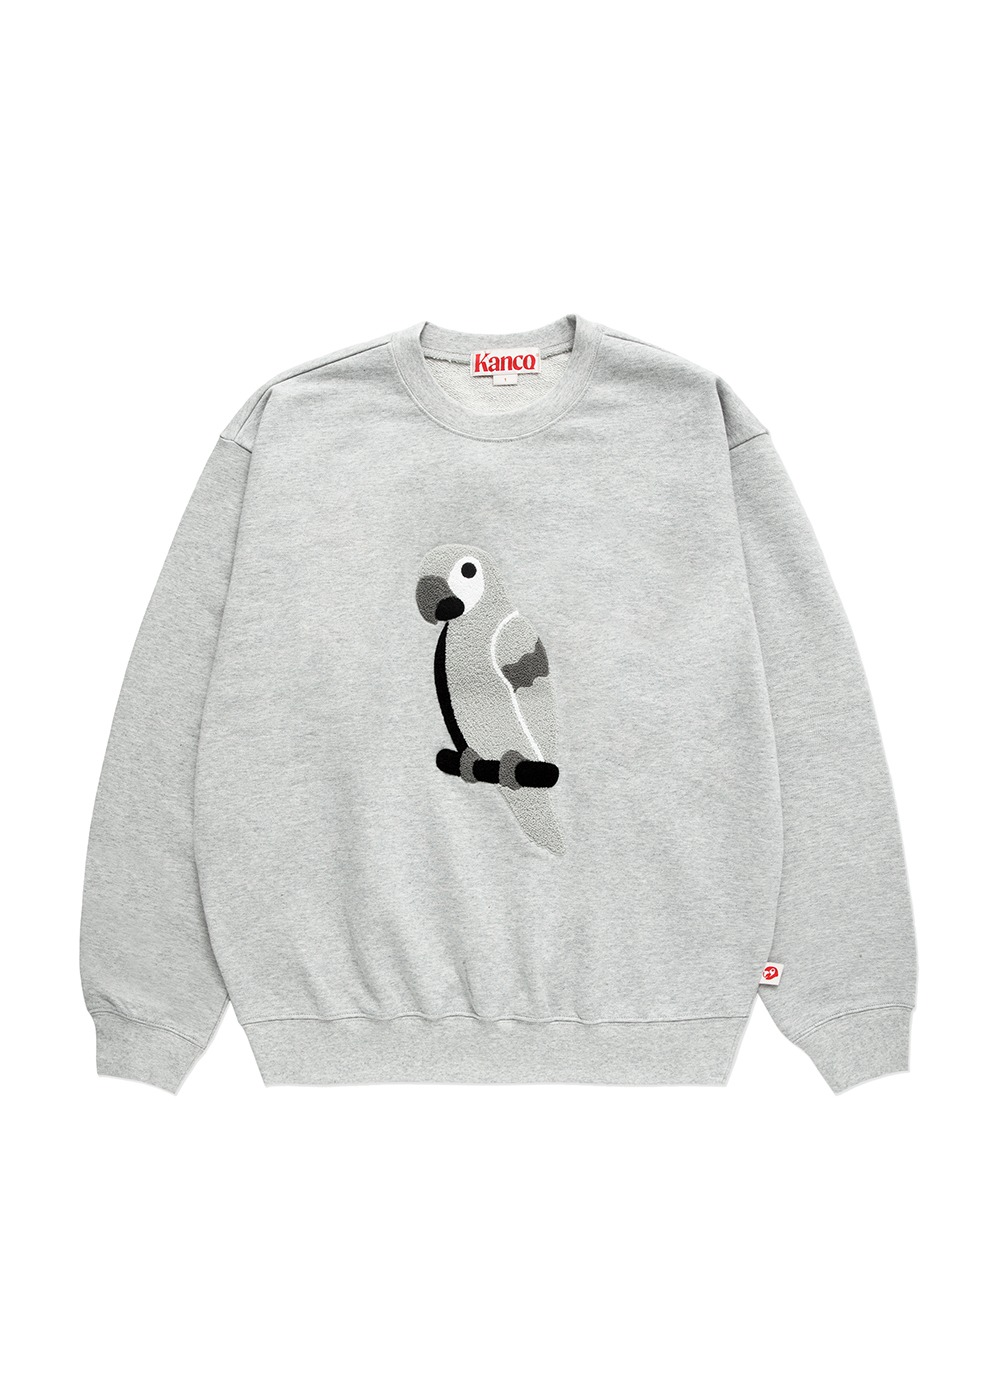 KANCO FULL LOGO SWEATSHIRT heather gray